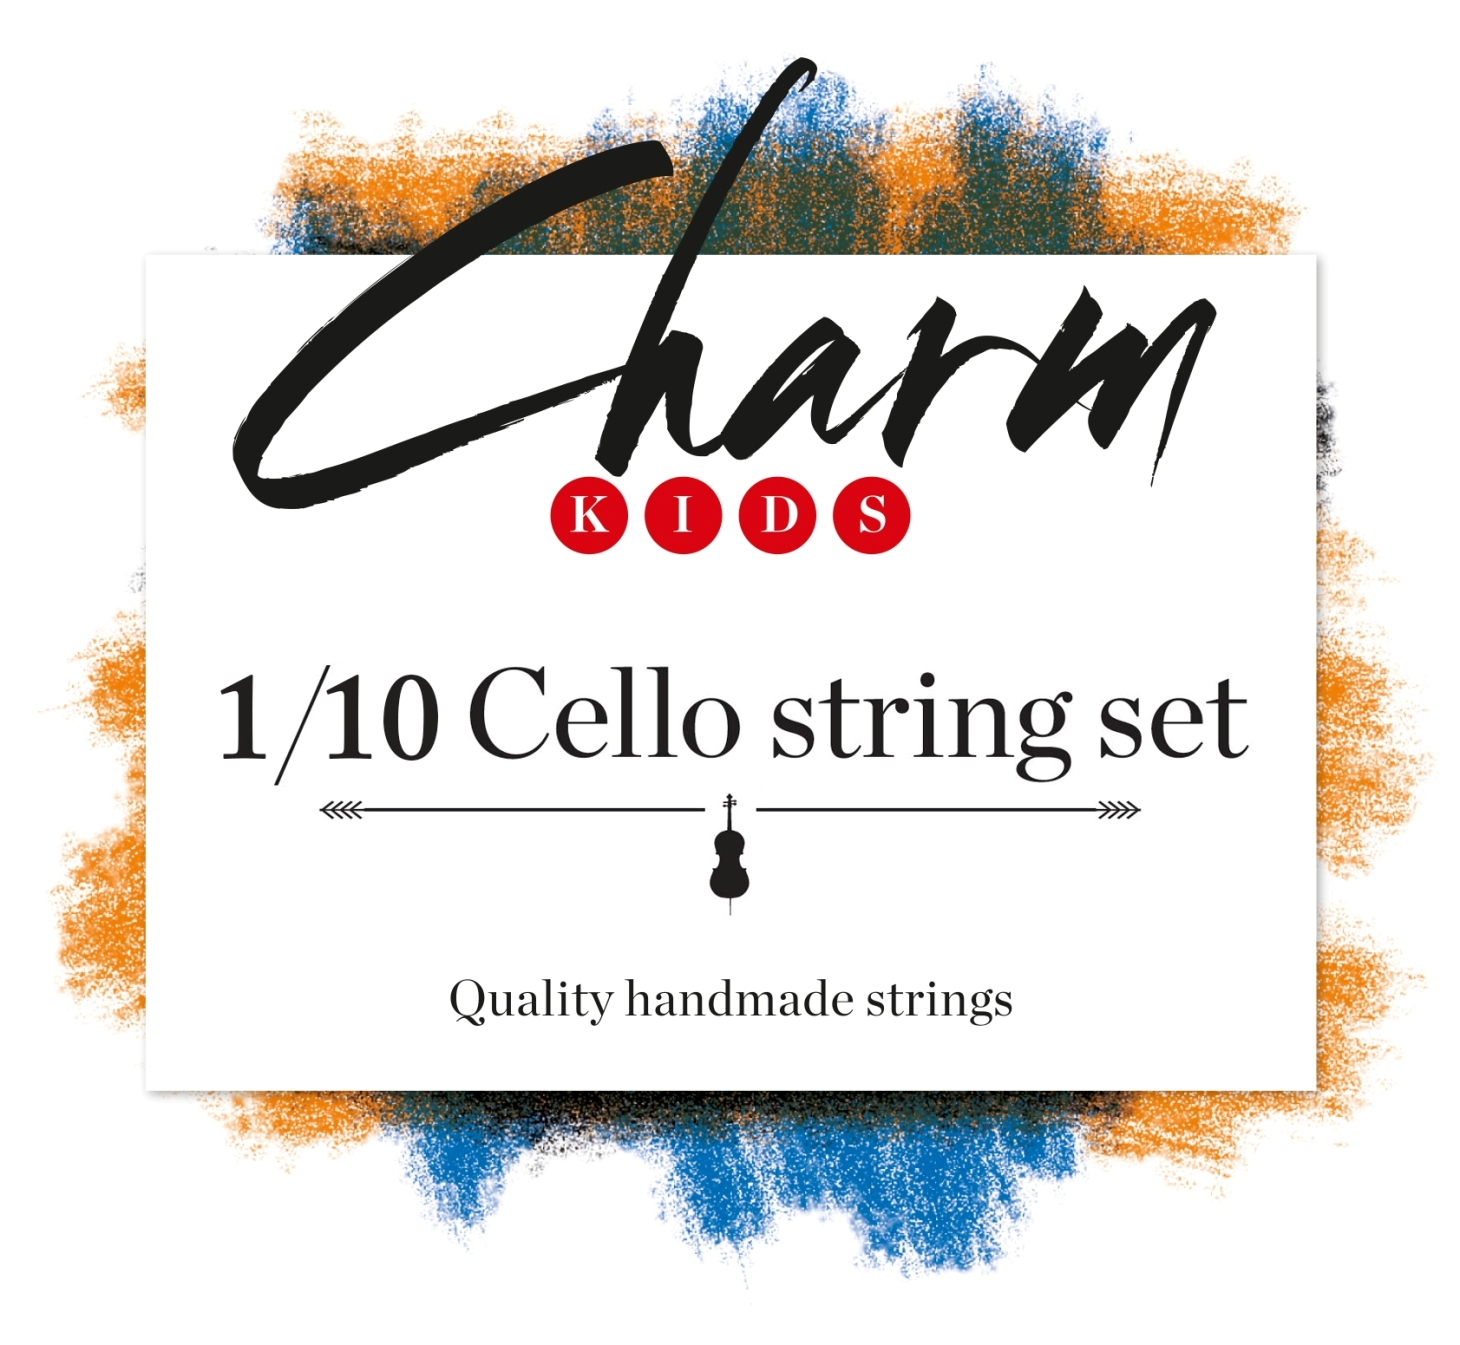 Charm Kids Cello 1/10